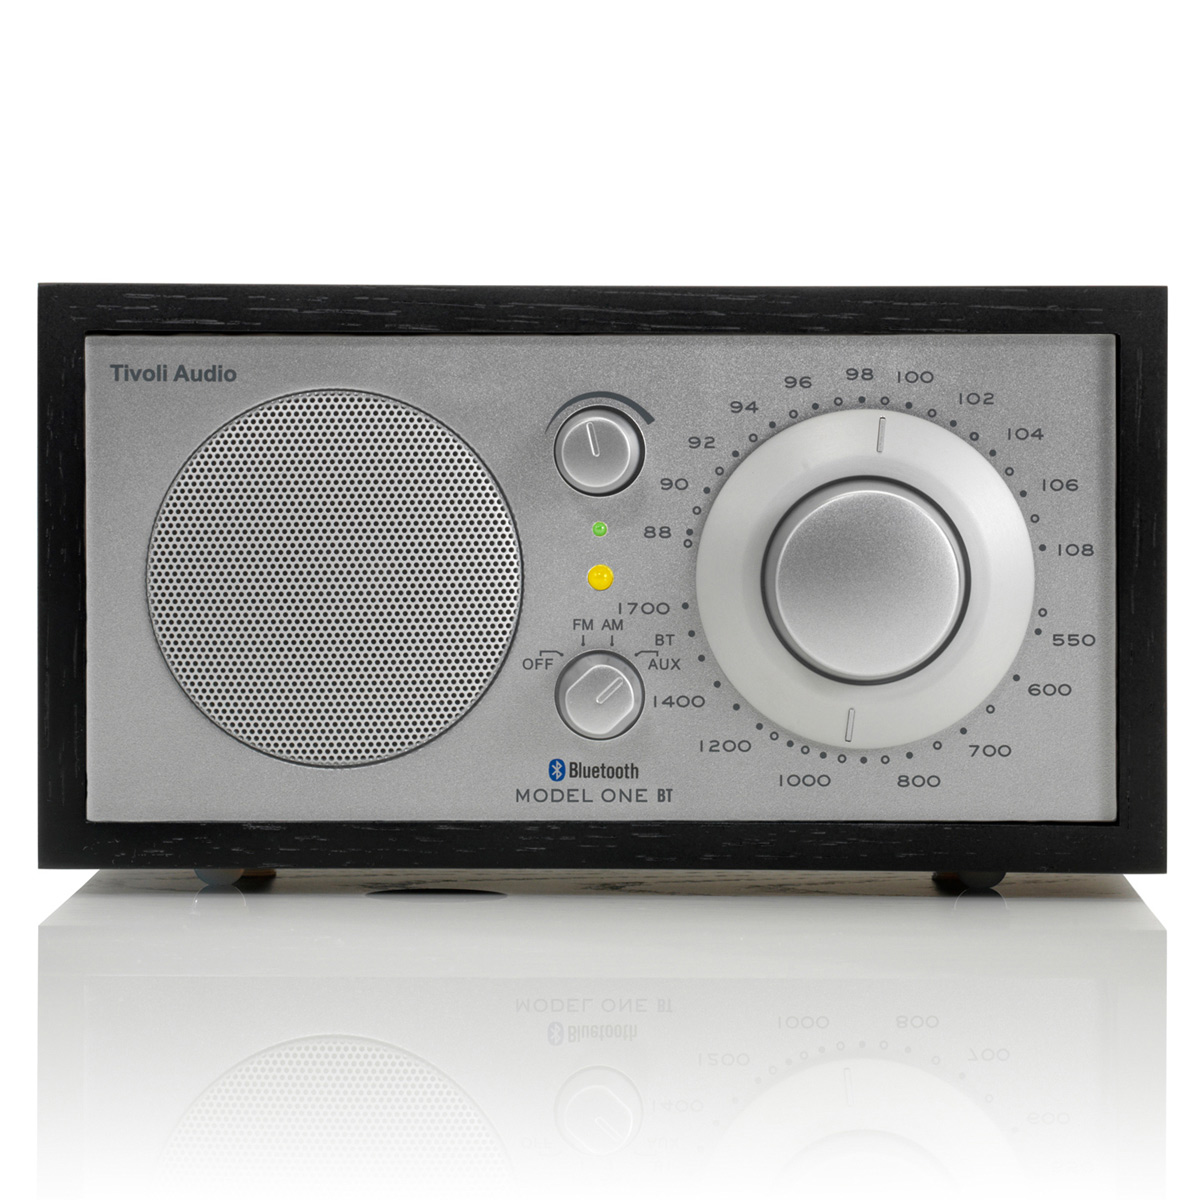 tivoli audio model one am fm radio with bluetooth ebay. Black Bedroom Furniture Sets. Home Design Ideas